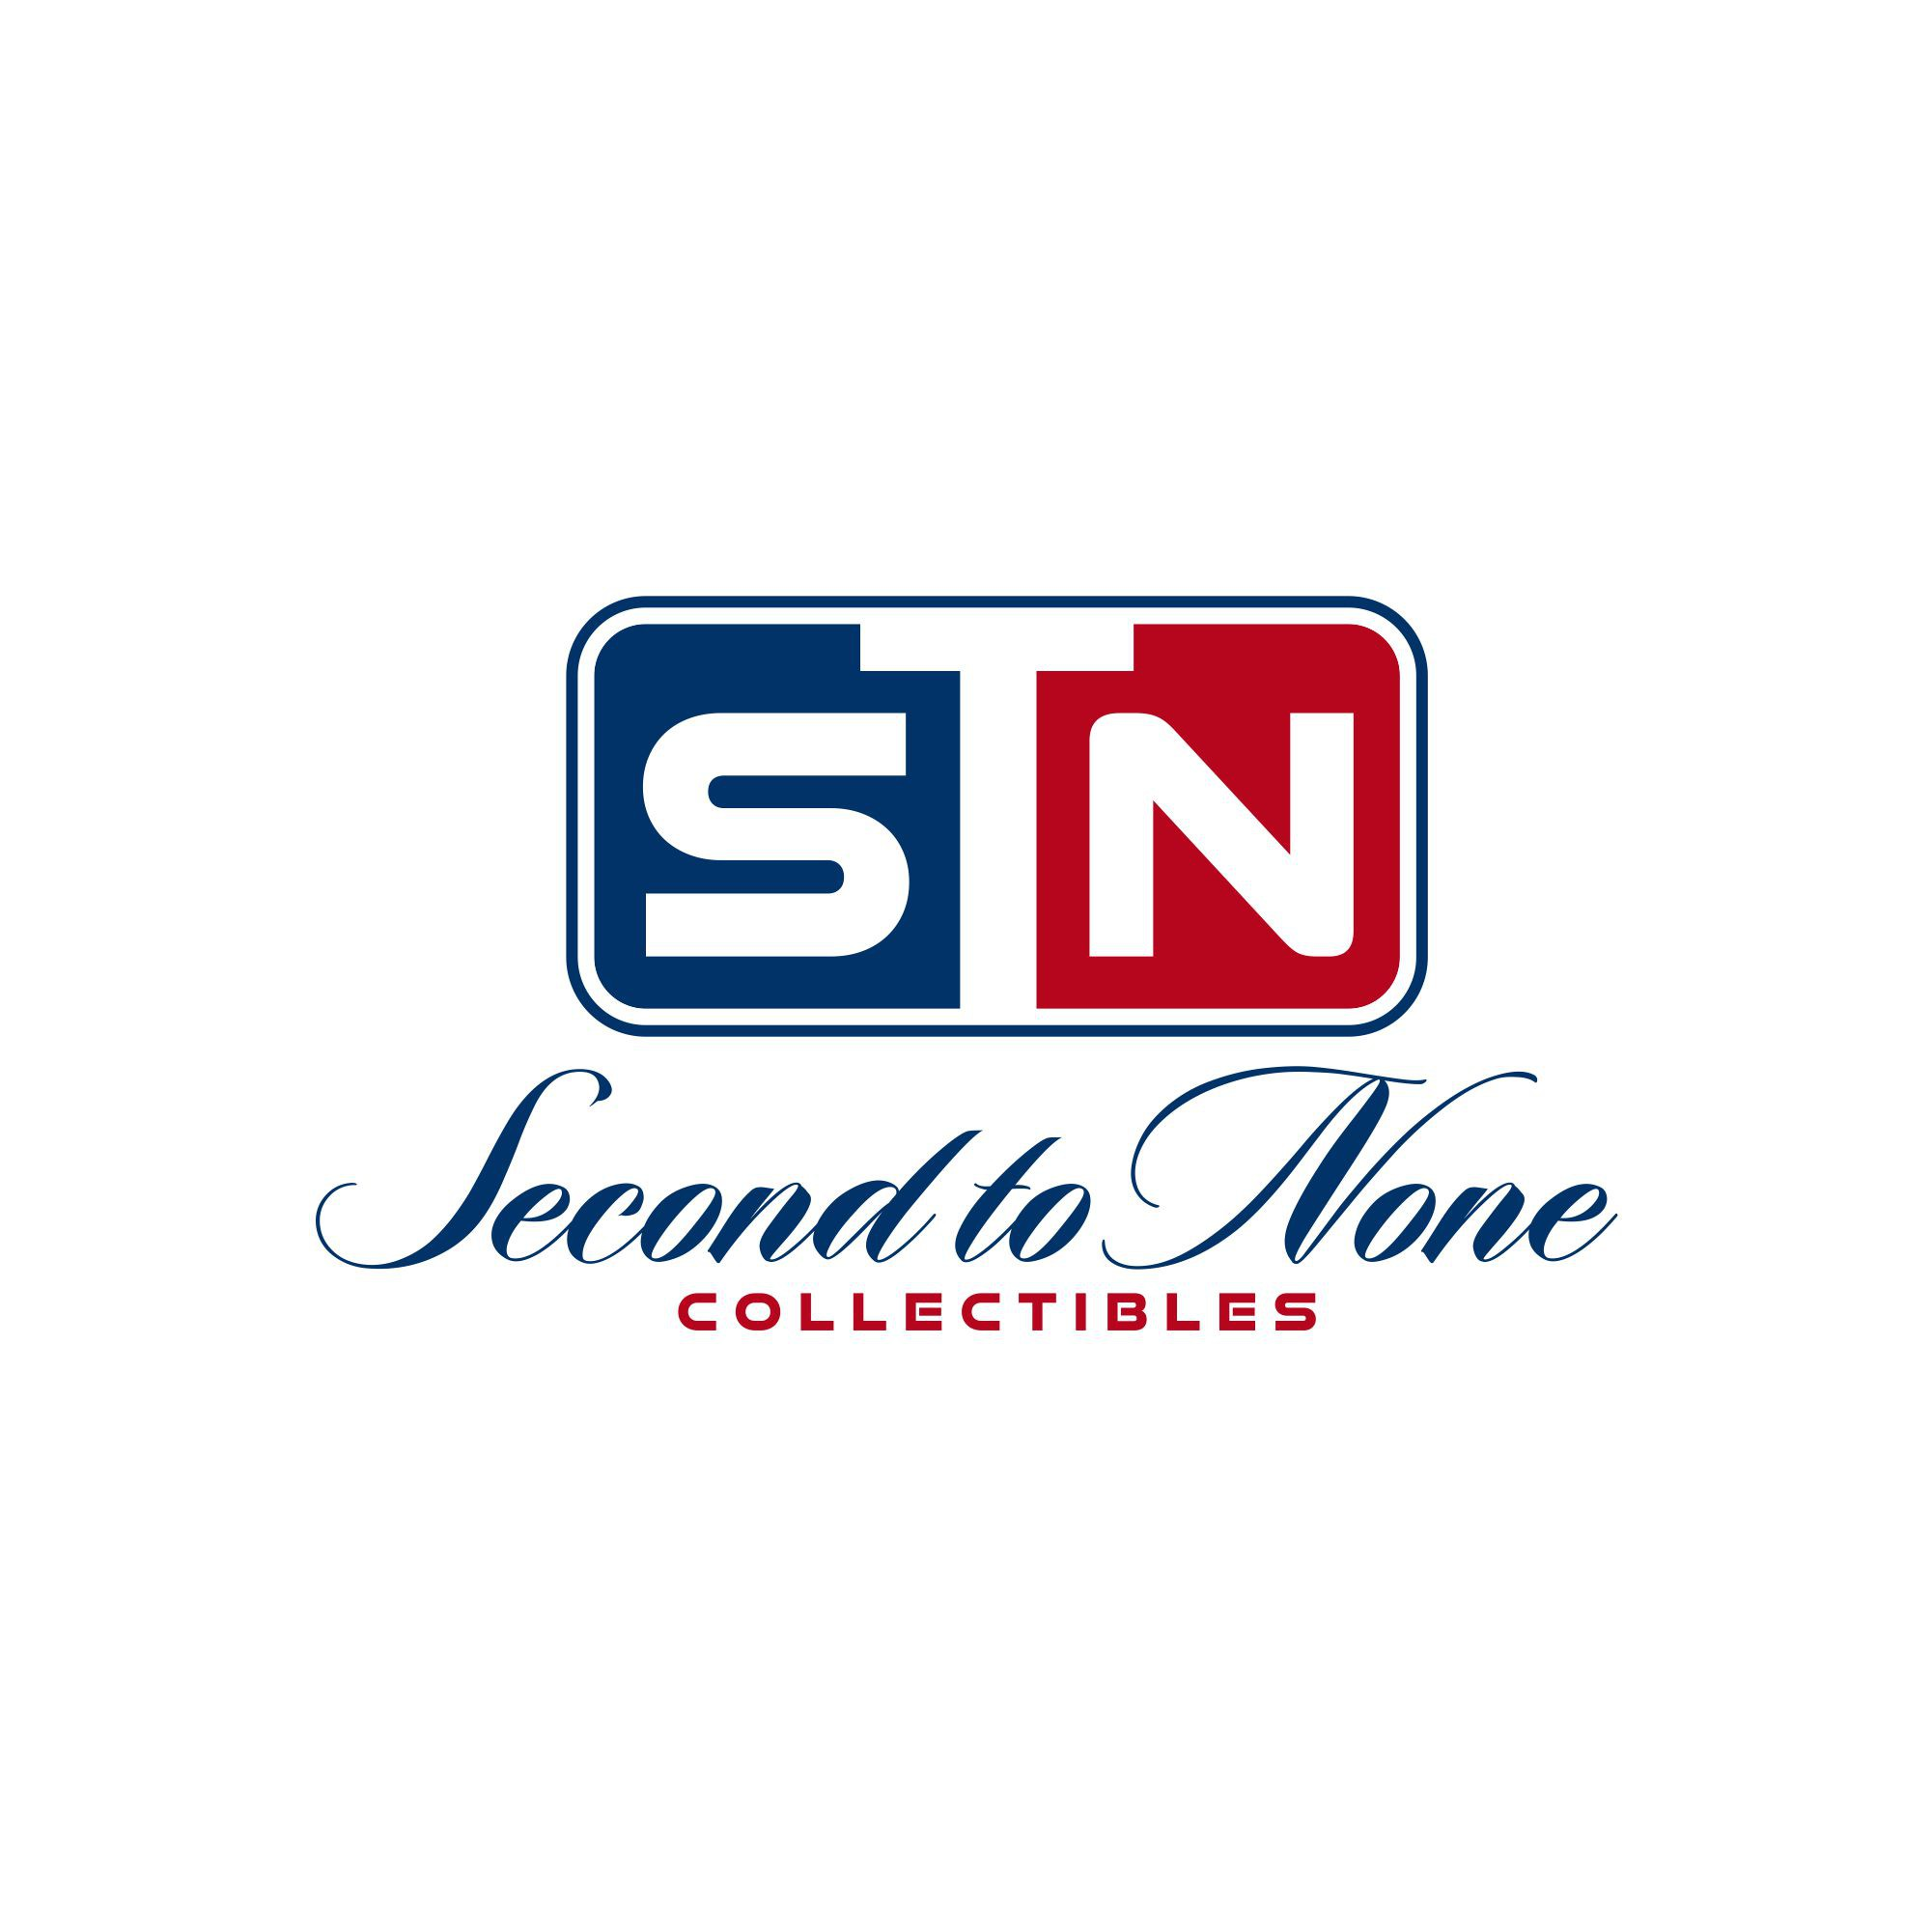 Alternative STN logos